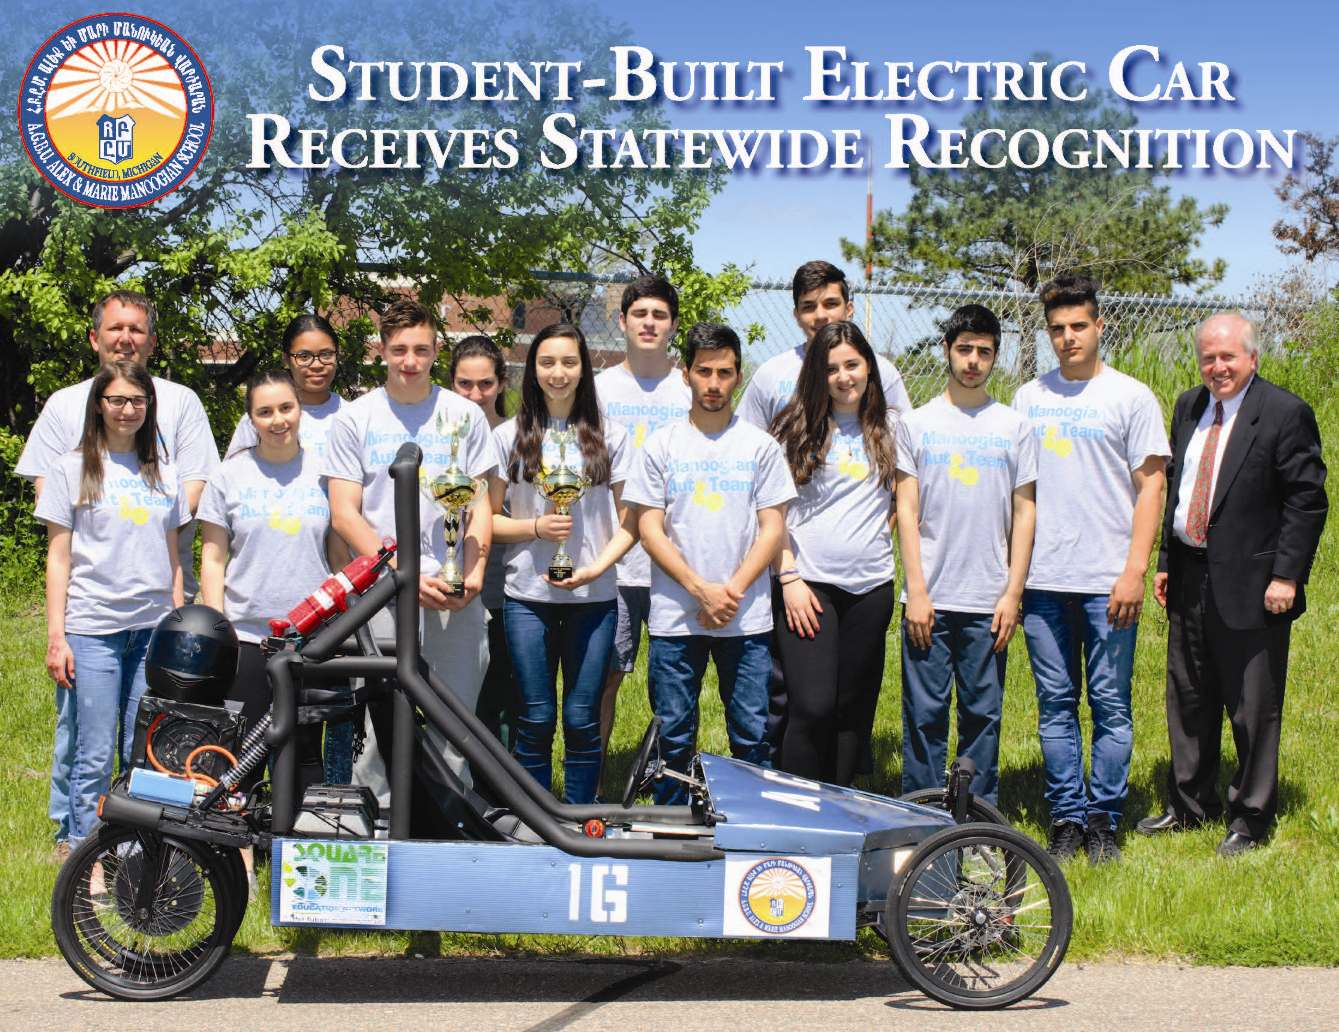 manoogian_school_electric_car1